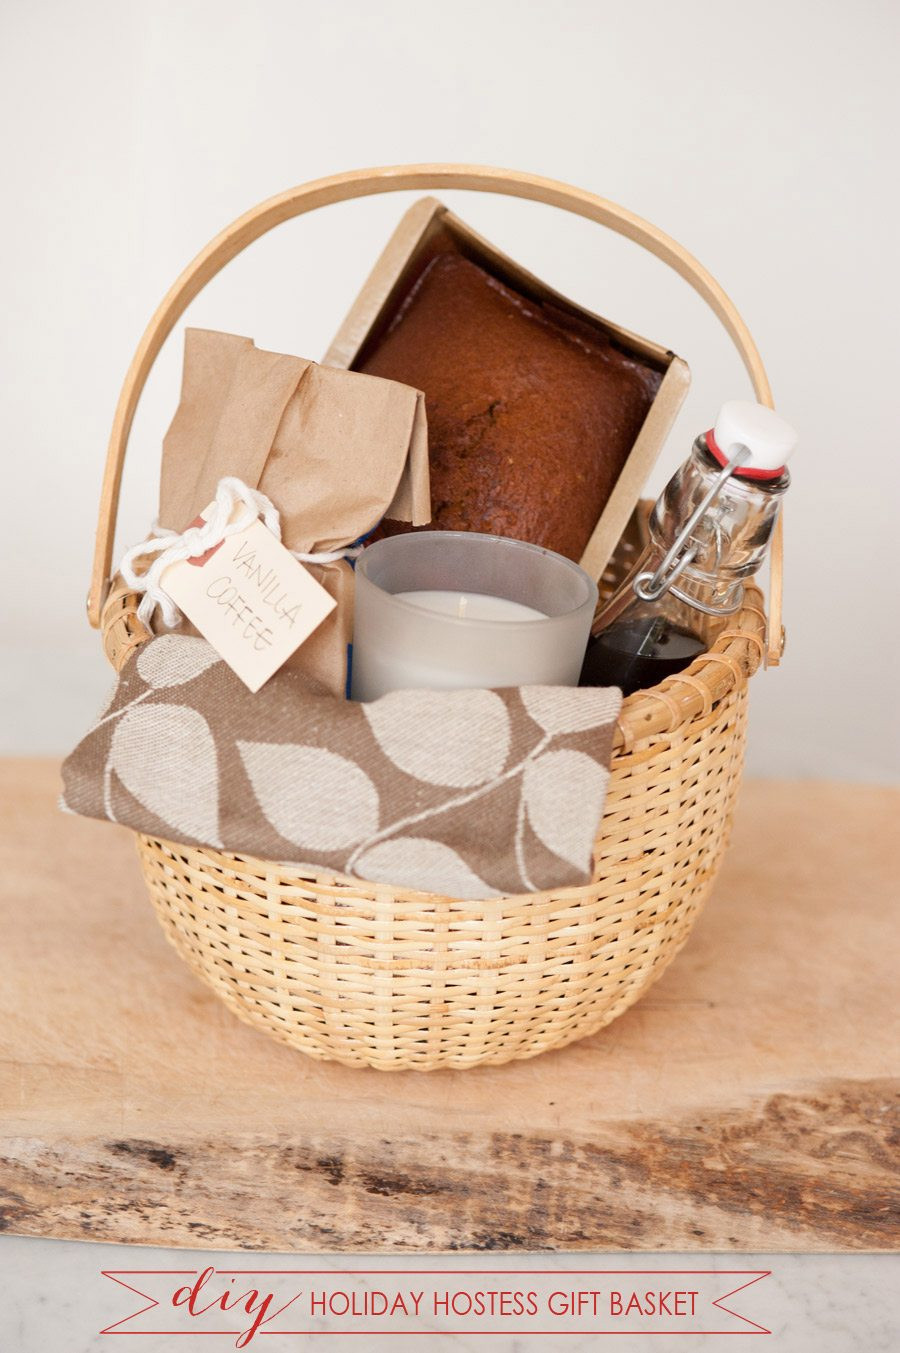 Best ideas about Holiday Gift Baskets Ideas . Save or Pin DIY Holiday Hostess Gift Basket The Sweetest Occasion Now.